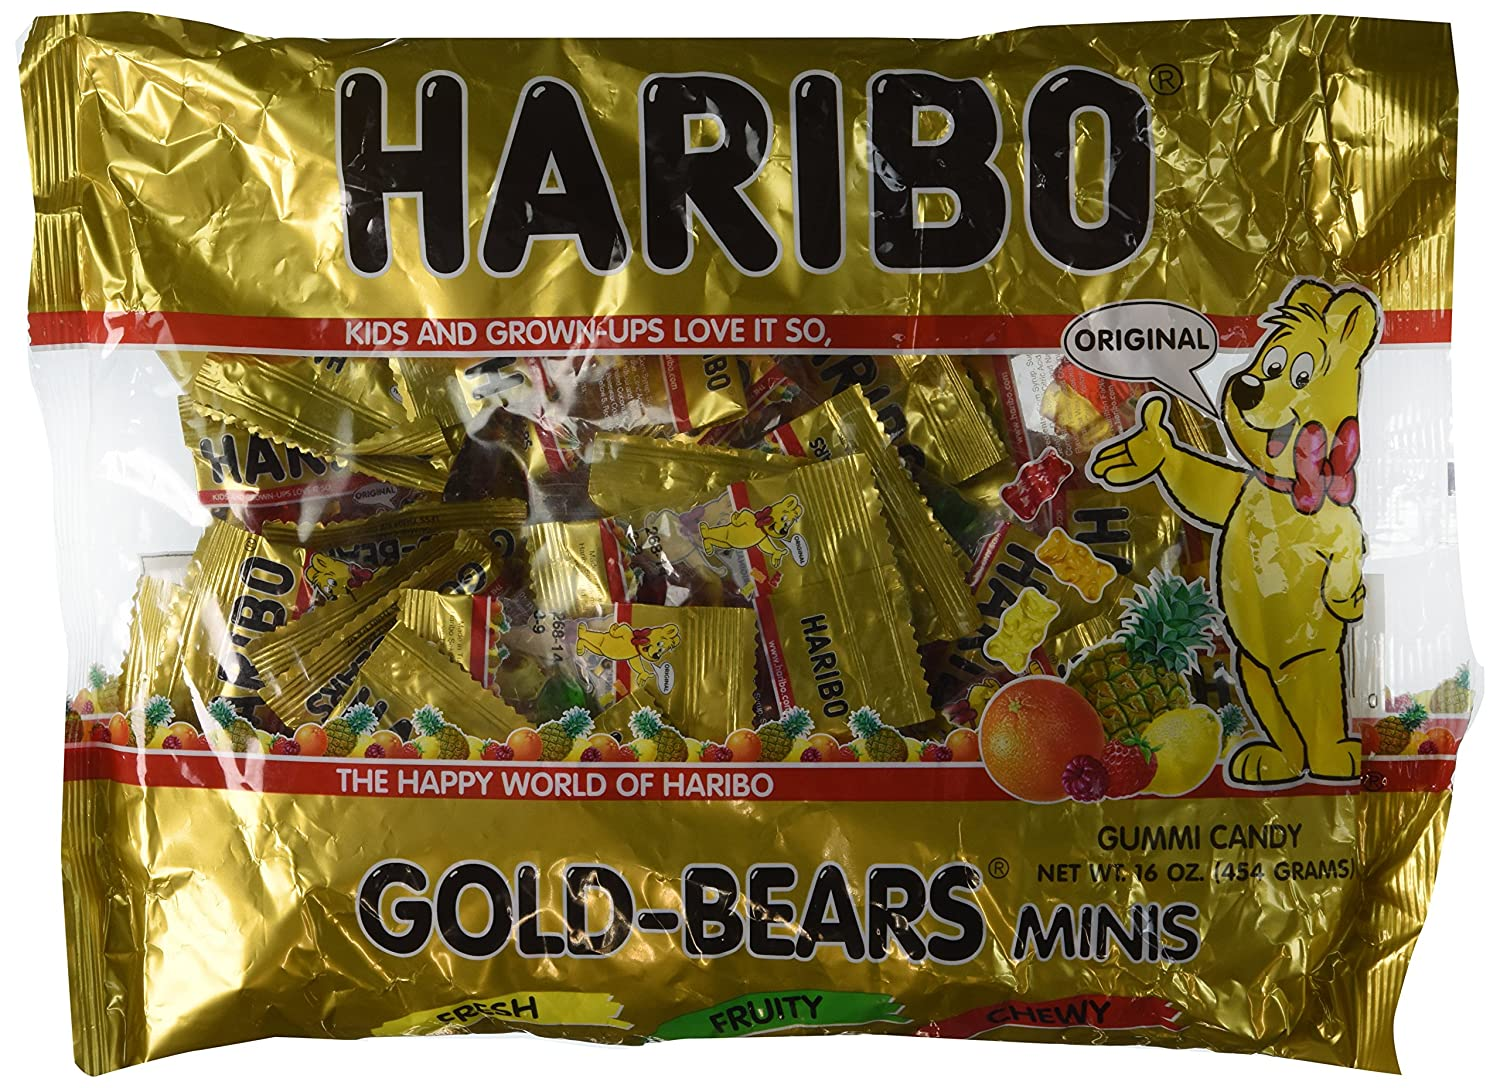 Haribo Gold-Bears Minis - Approximately 40 Individual Mini Bags, 16 Ounce Bag